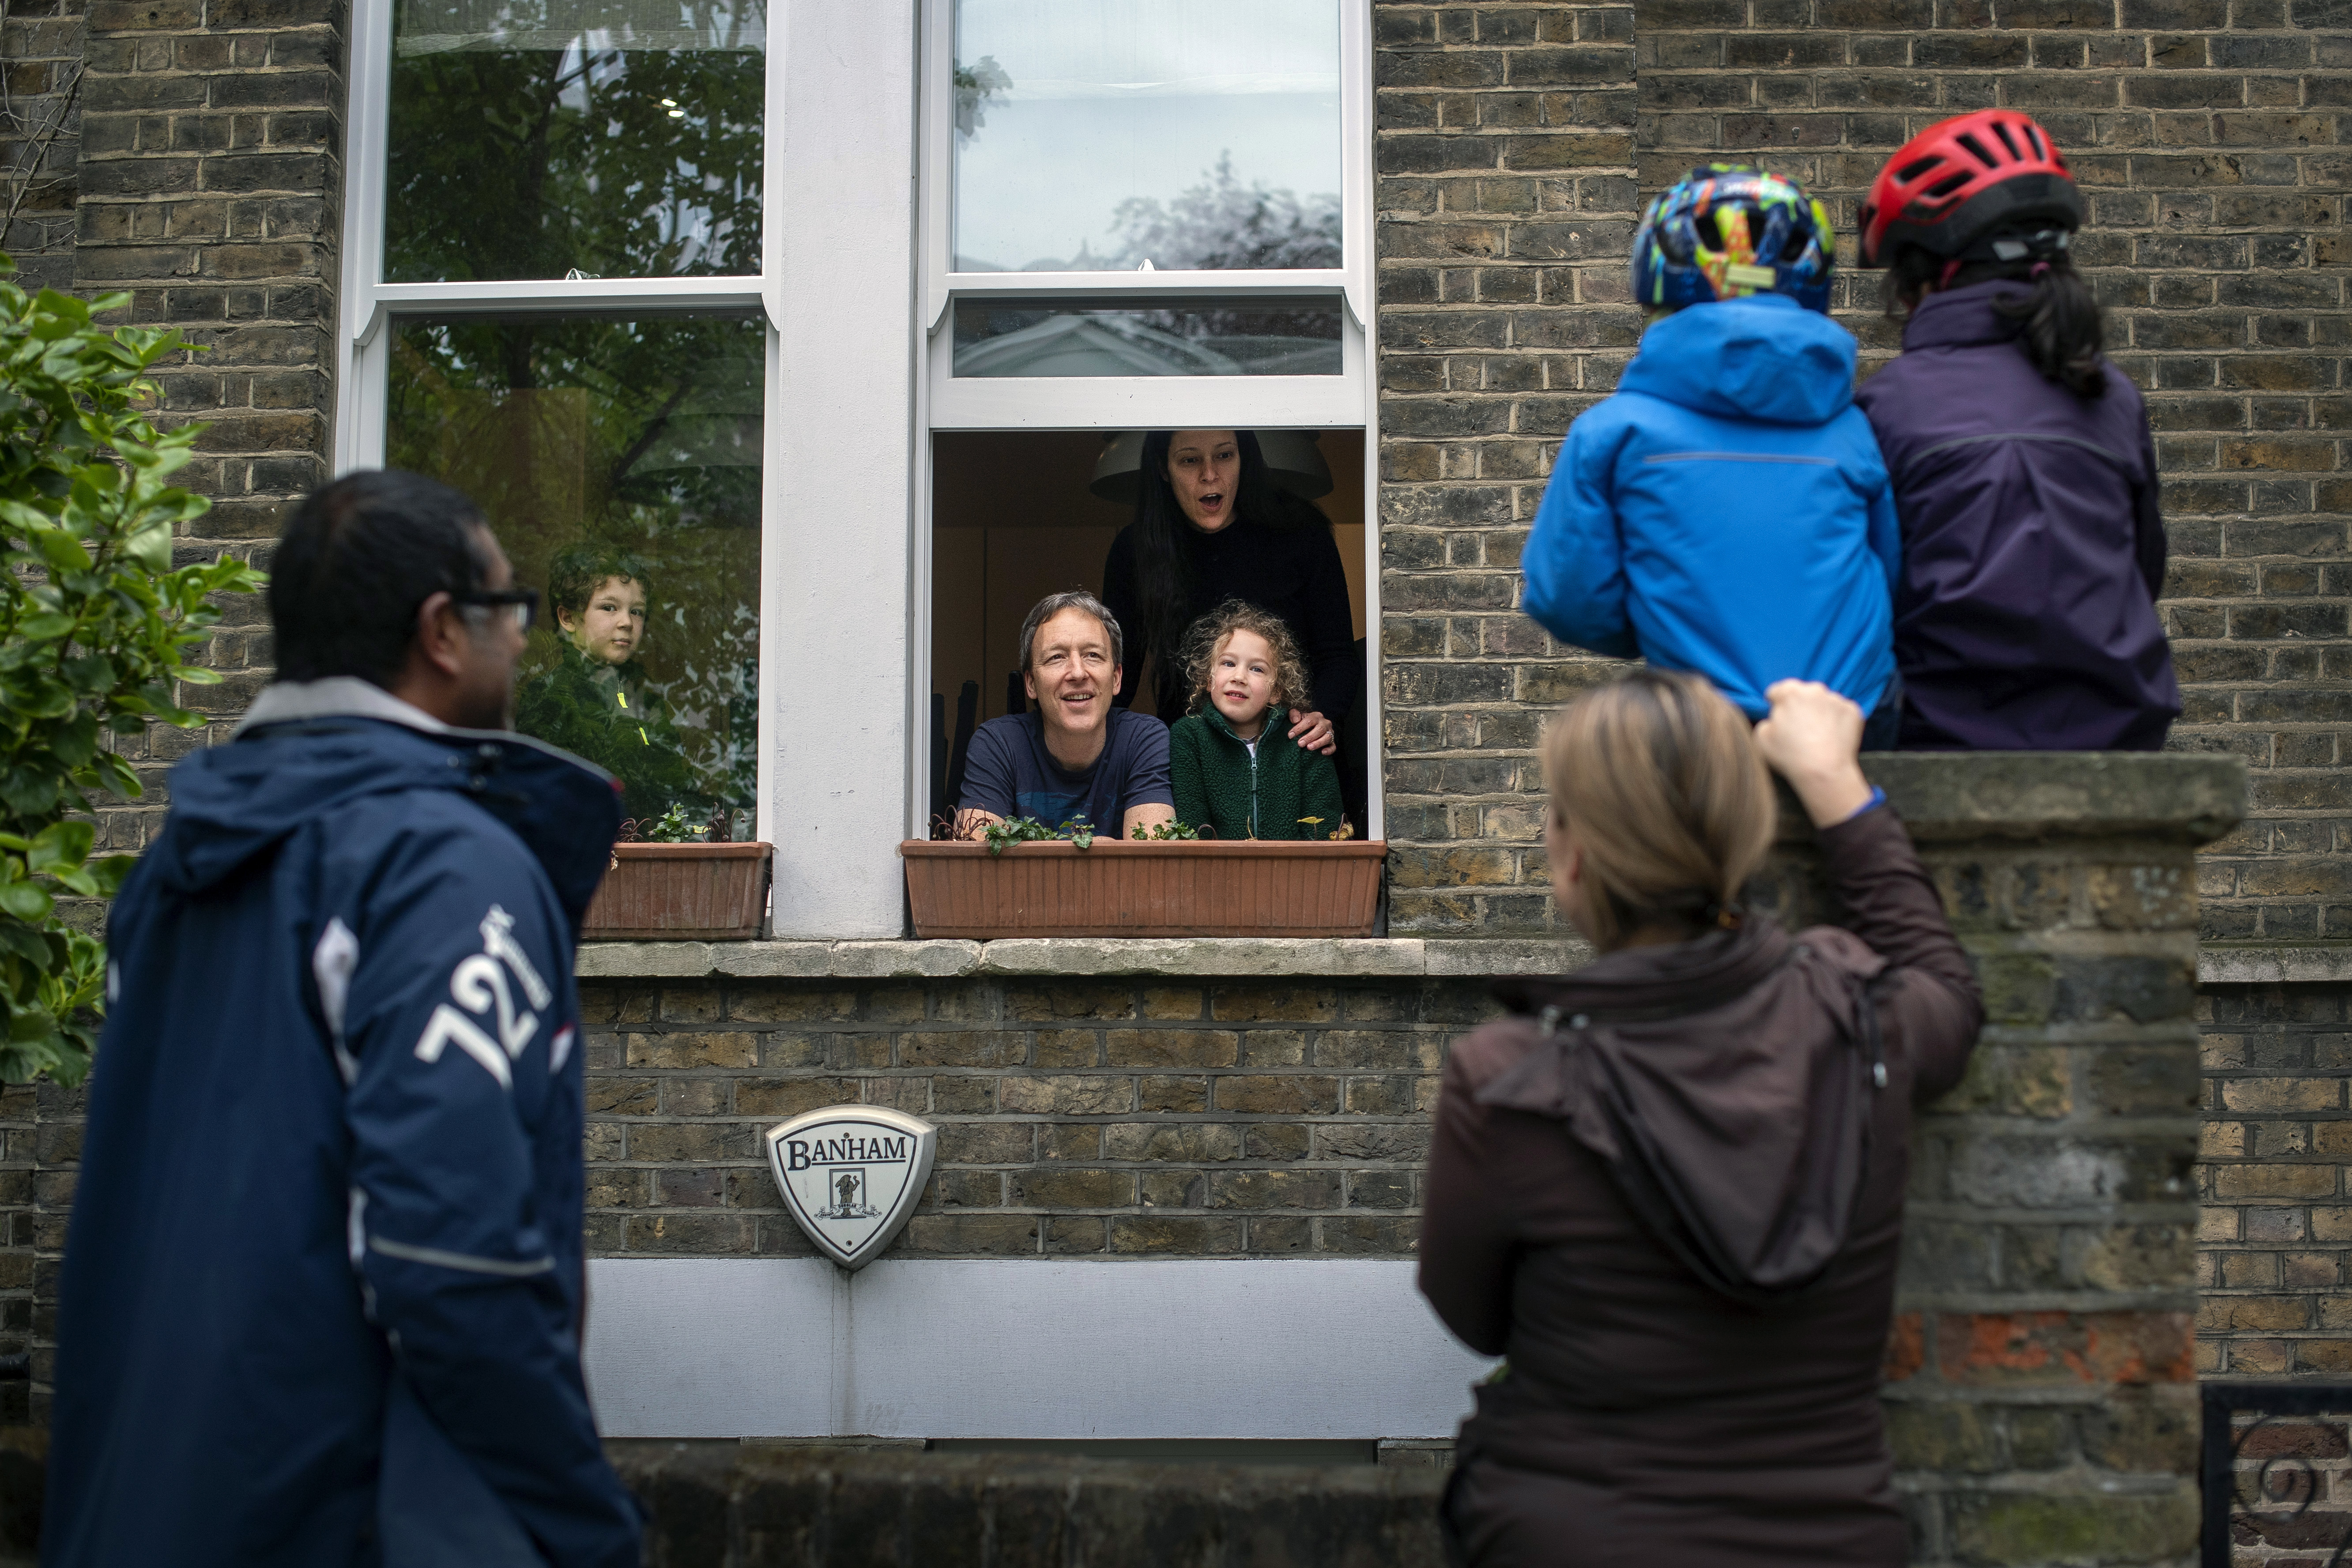 **Parental permission granted** Two families maintain social distancing while talking to each other outside a home in Hampstead, north London, as the UK continues in lockdown to help curb the spread of the coronavirus.